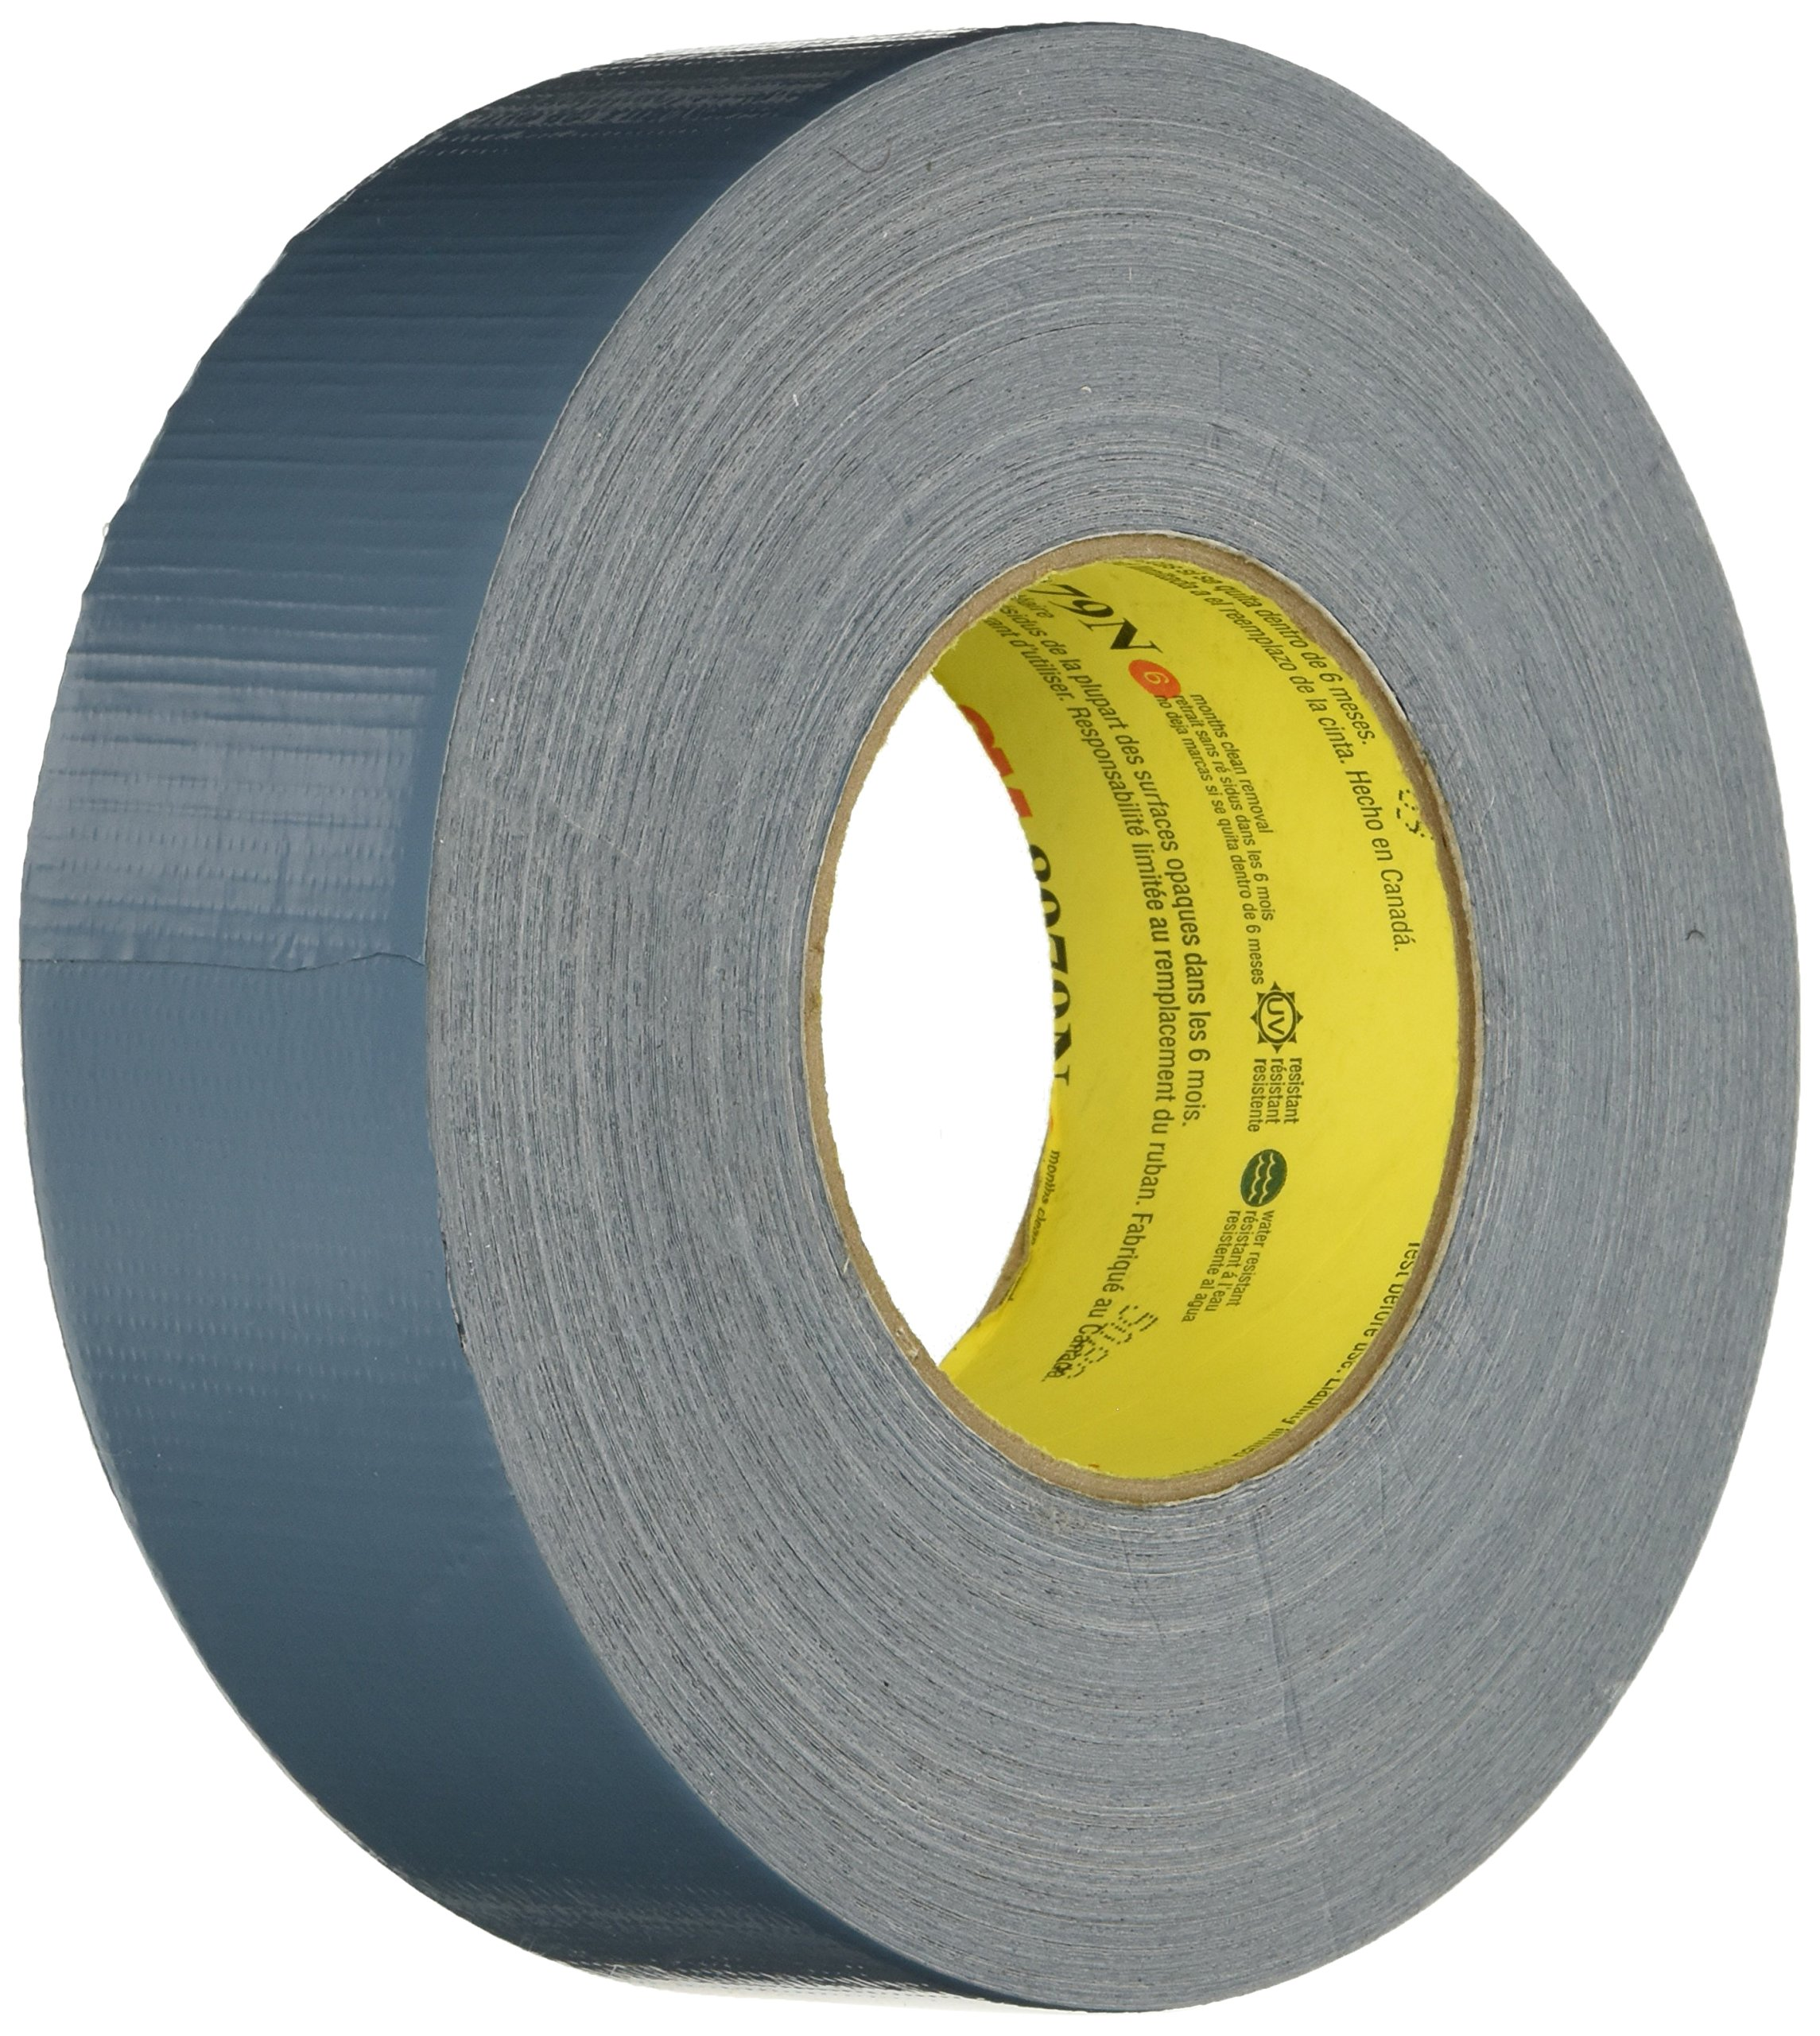 3M Performance Plus Nuclear Duct Tape, Slate Blue, 48-Millimeter by 54.8-Meter